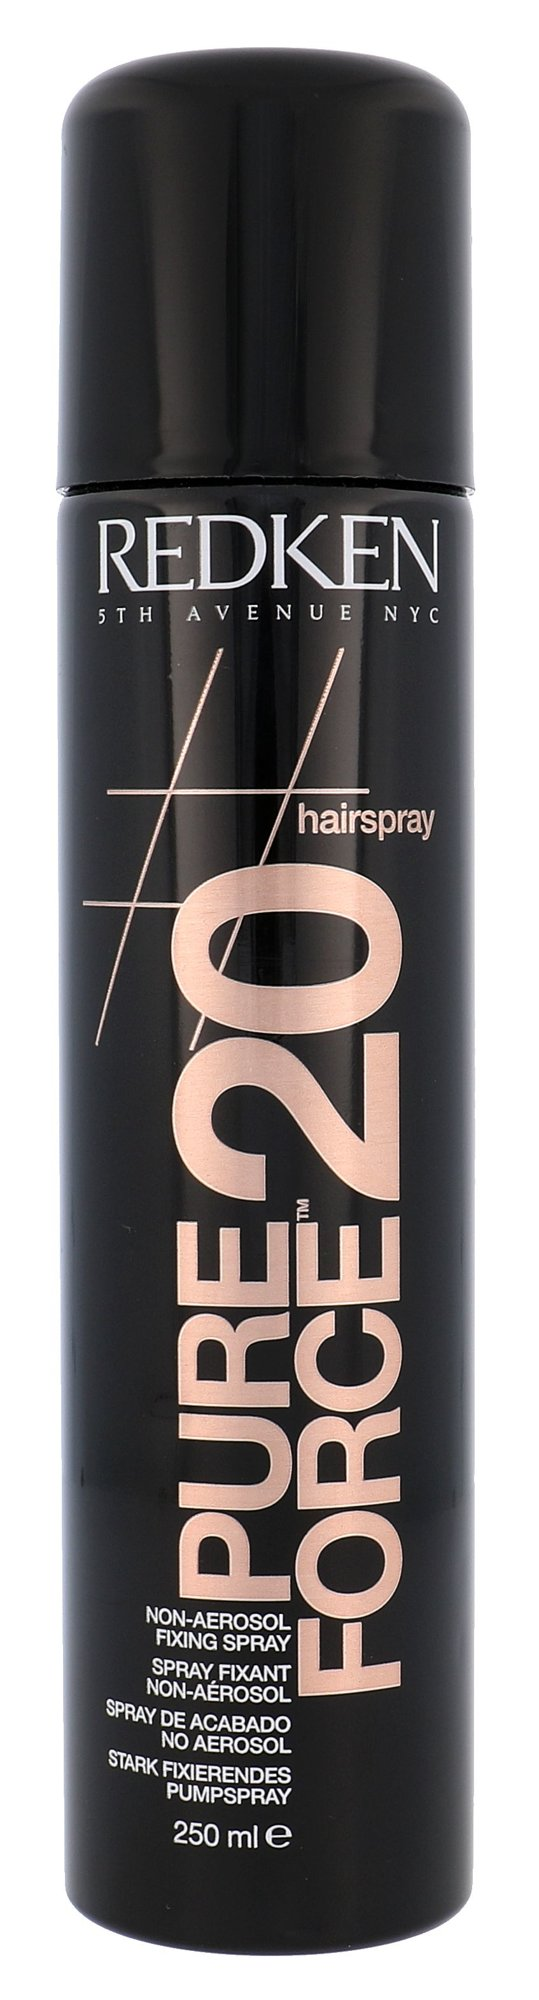 Redken Pure Force 20 Cosmetic 250ml